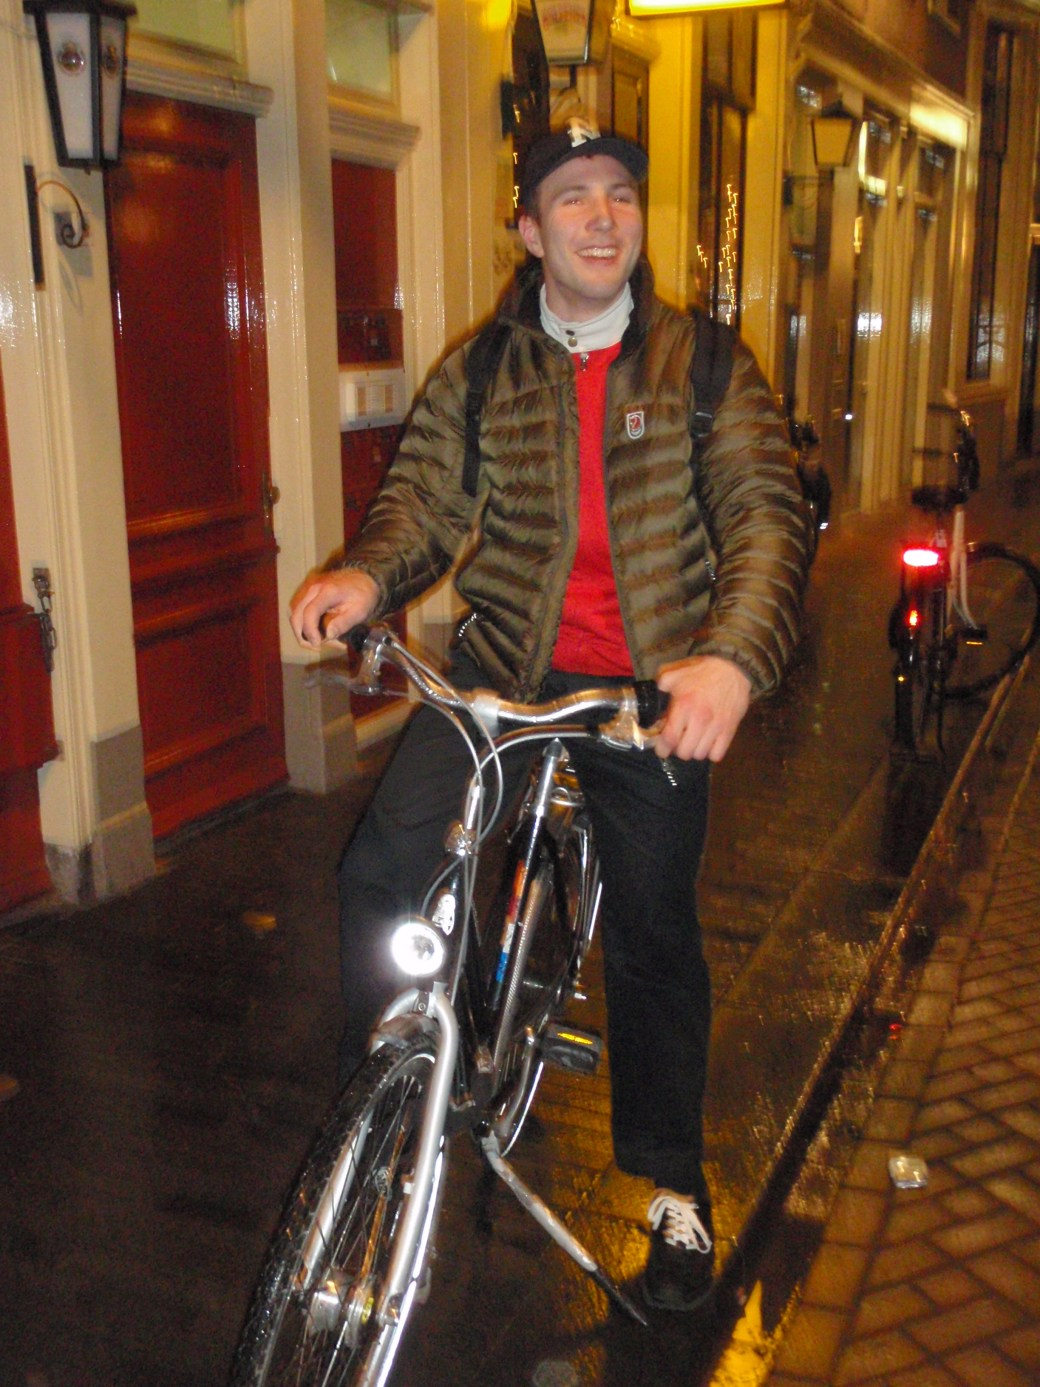 Second Cute Dutchman with Bike; Amsterdam, Netherlands; 2010